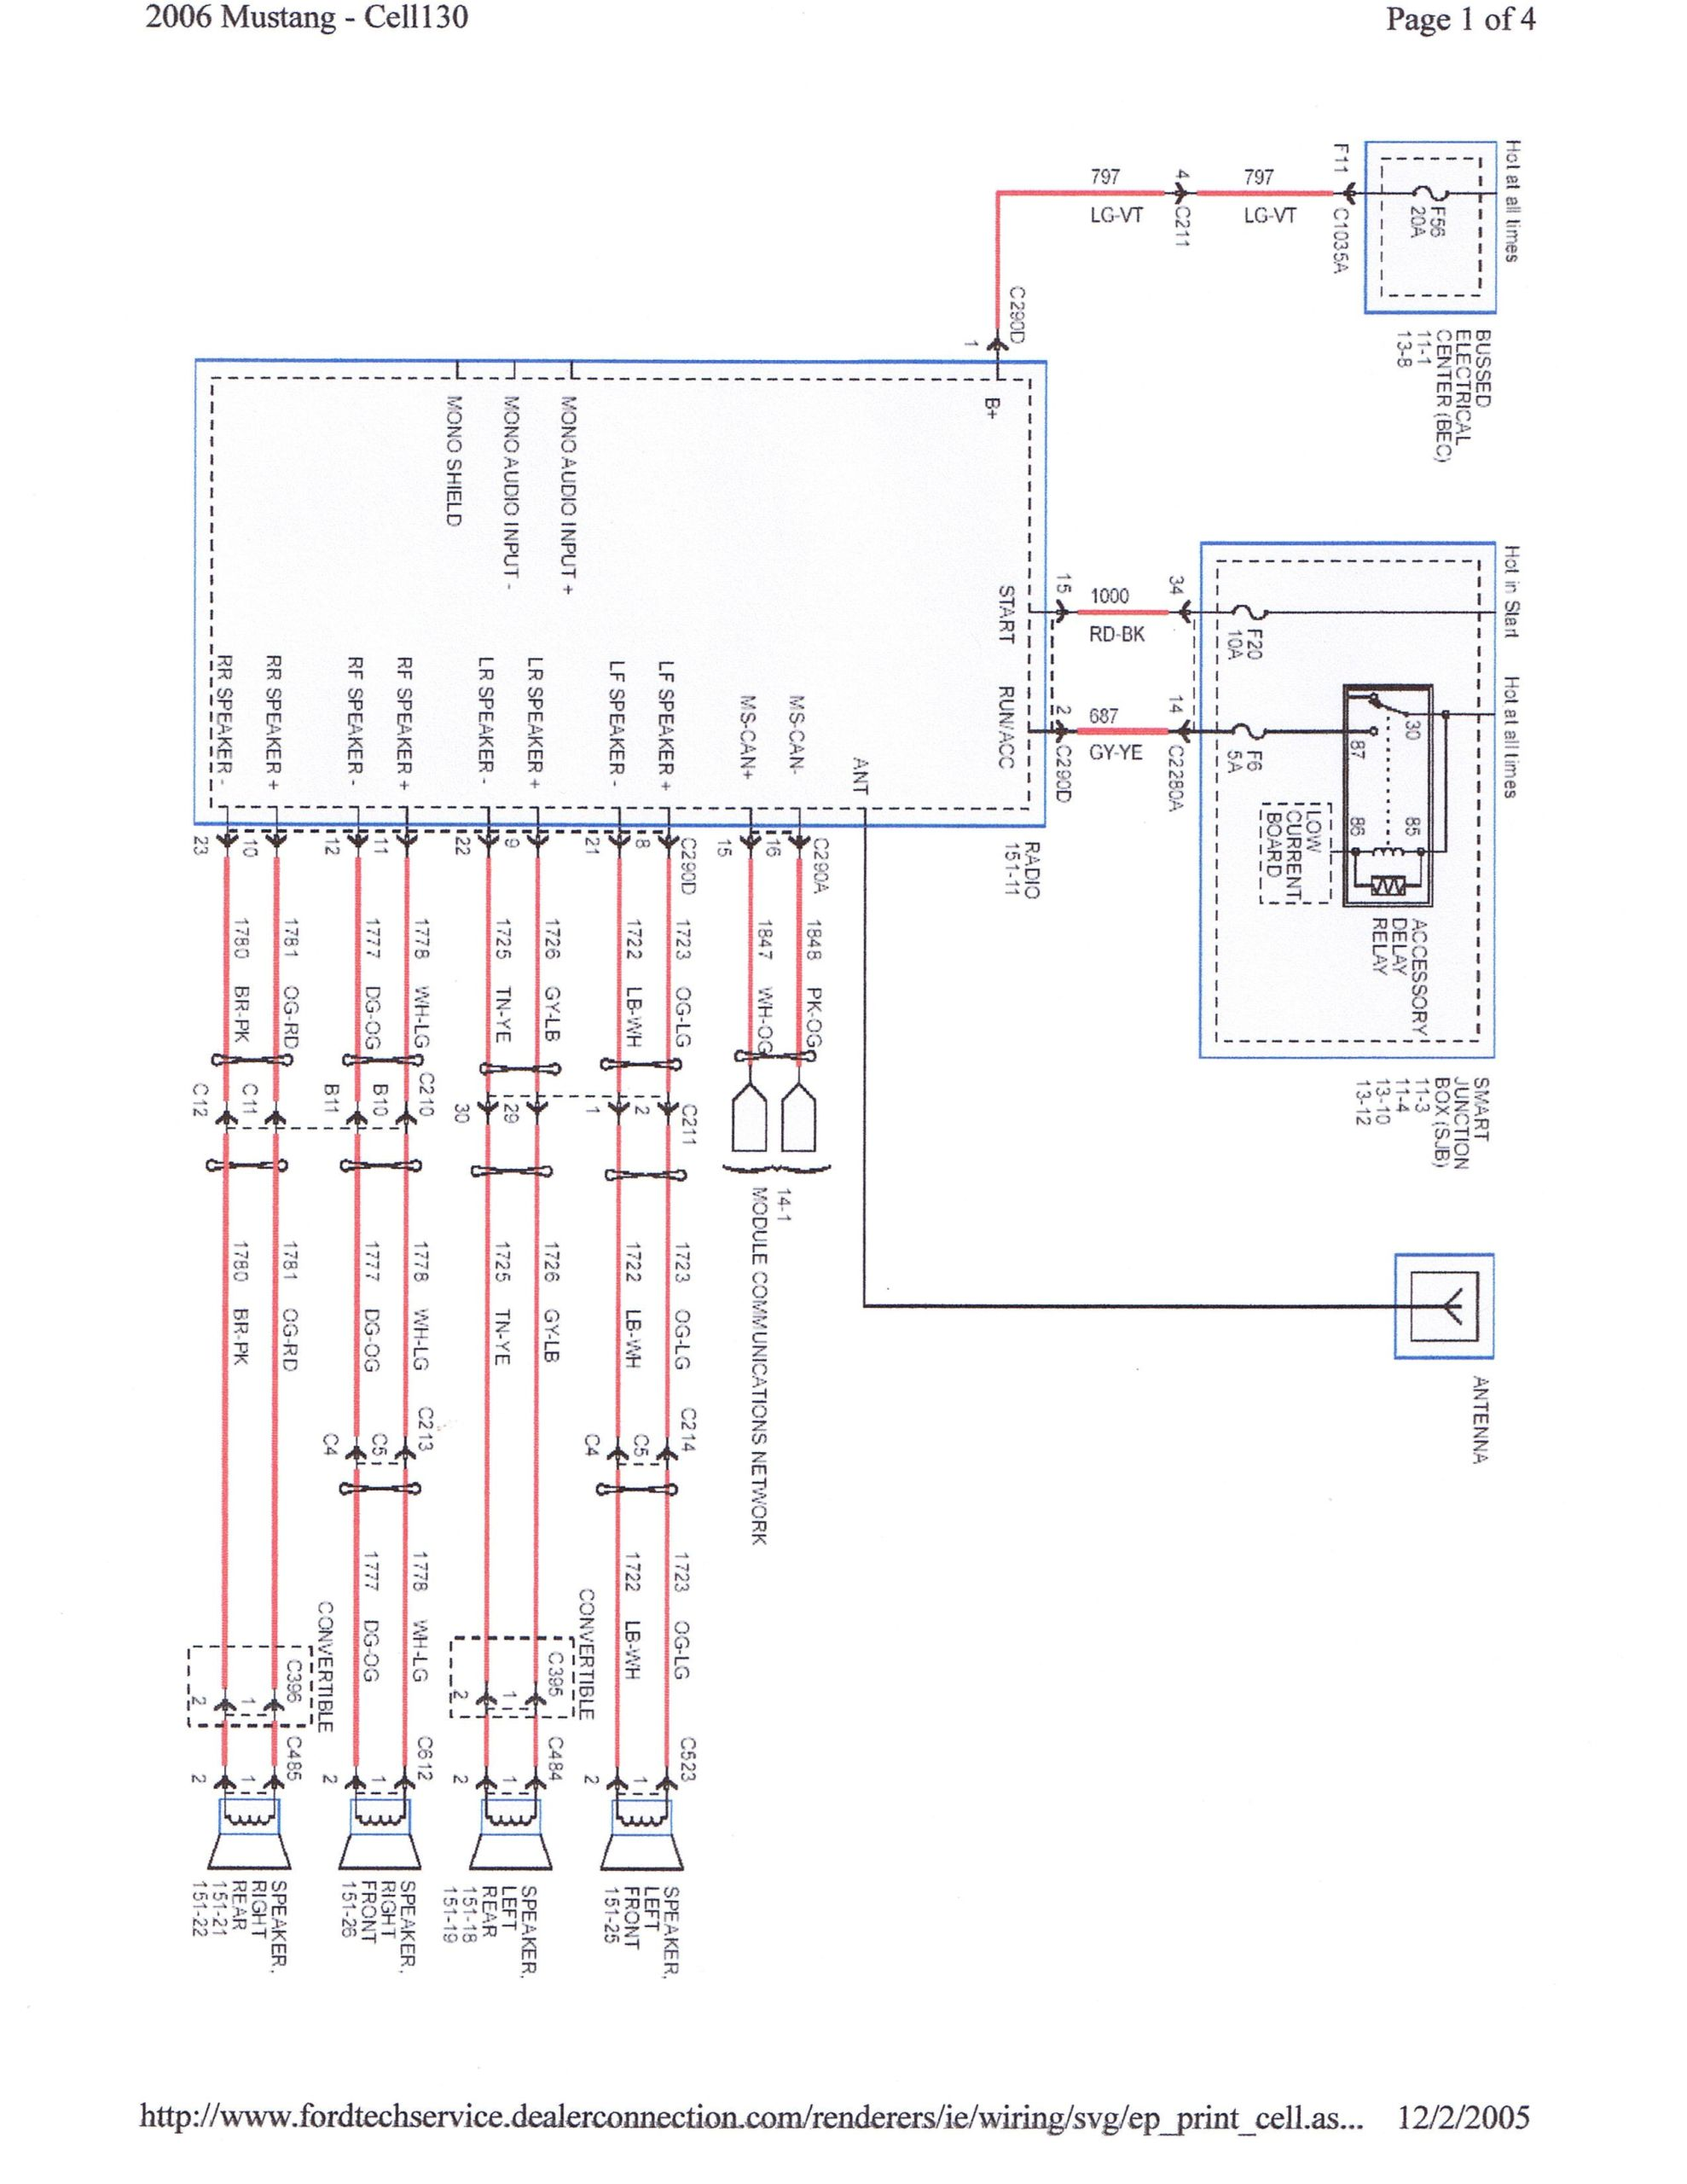 shaker 500 wiring harness wiring diagram schematics jpg